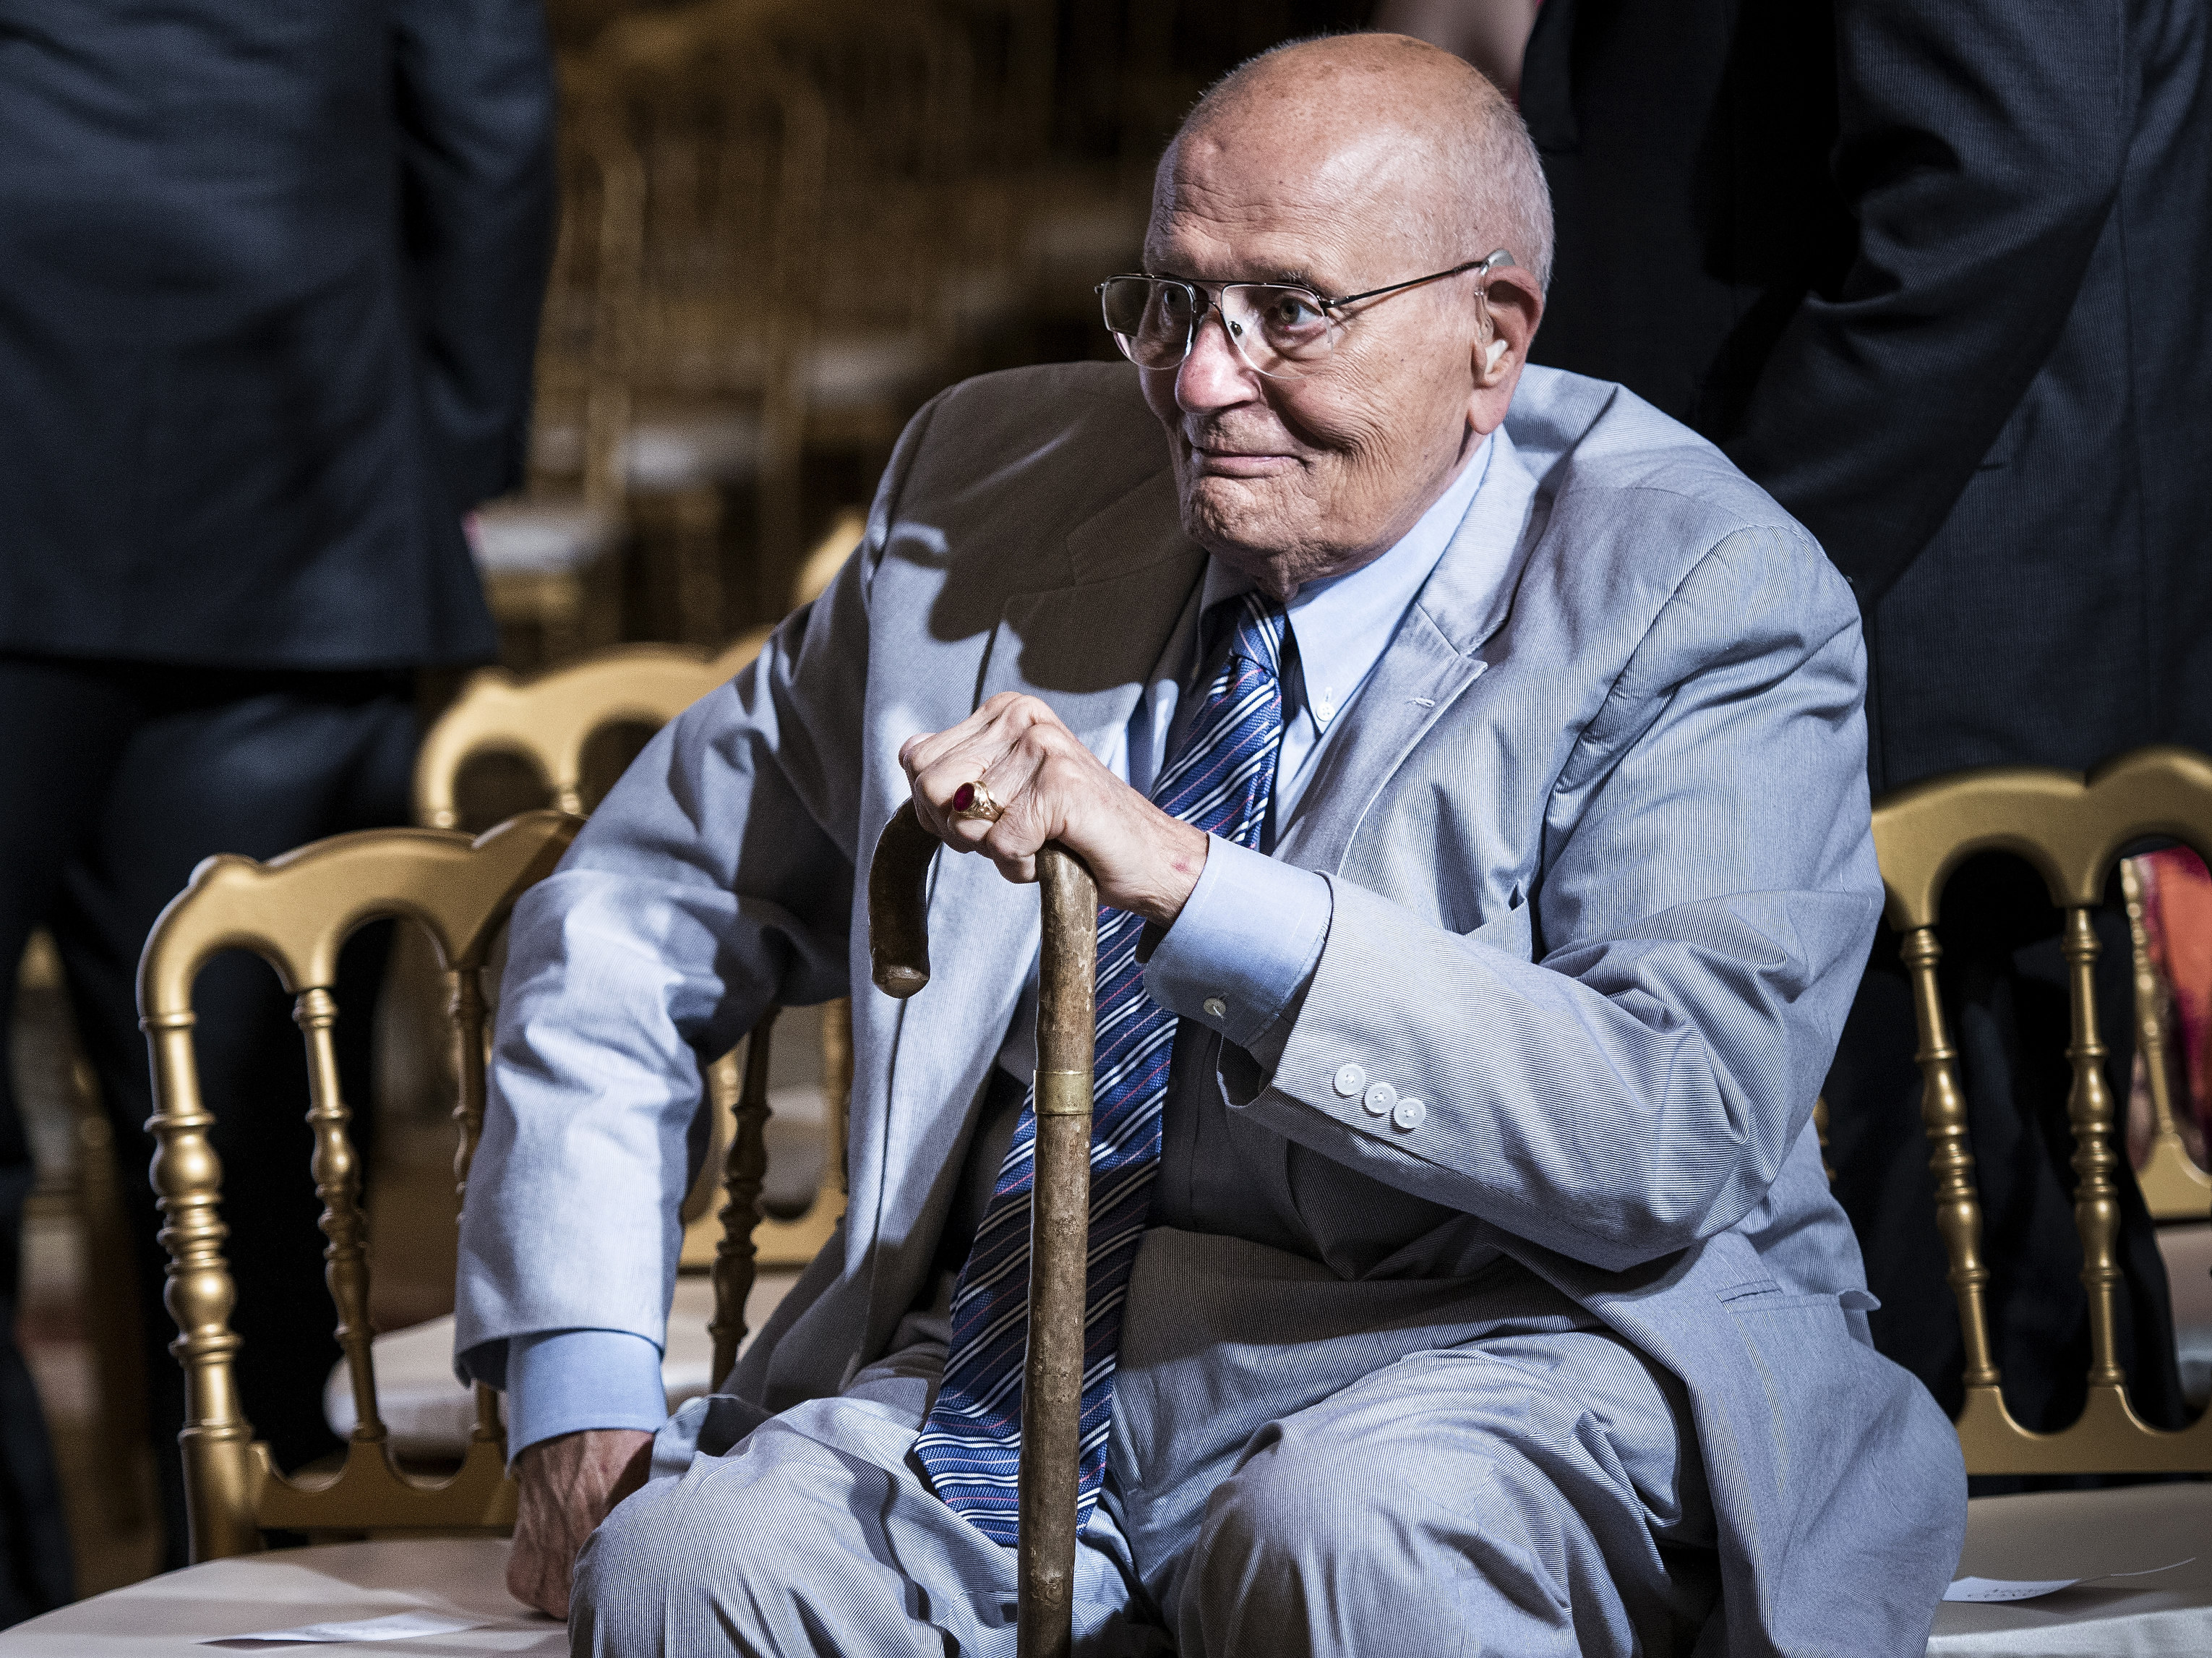 Rep. John Dingell, Who Has Served A Record 58 Years, Is Retiring